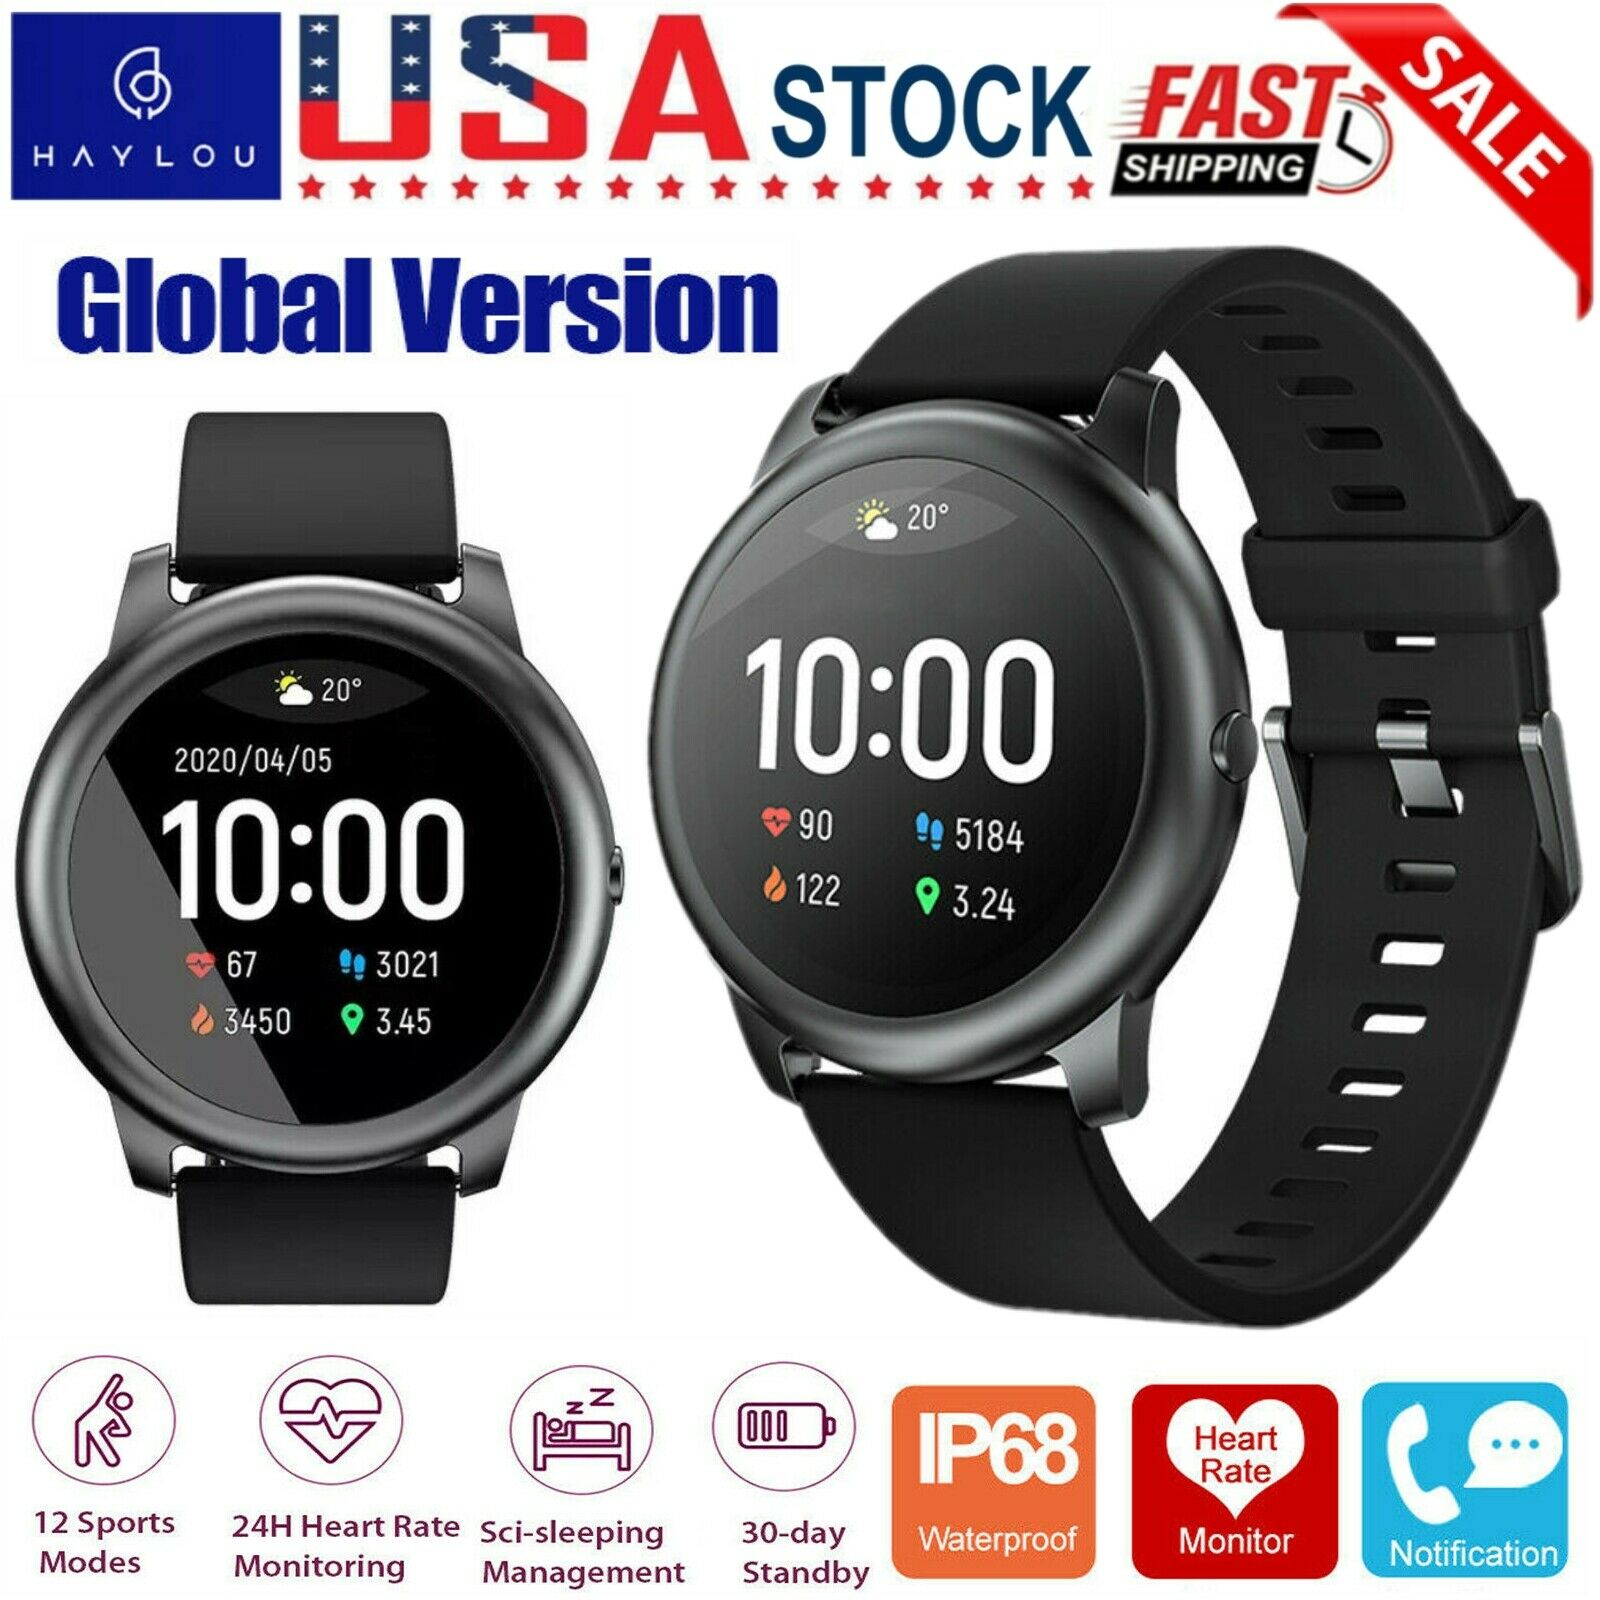 Haylou LS05 Solar Smart Watch Sport Fitness Heart Rate Monitor For iOS Android